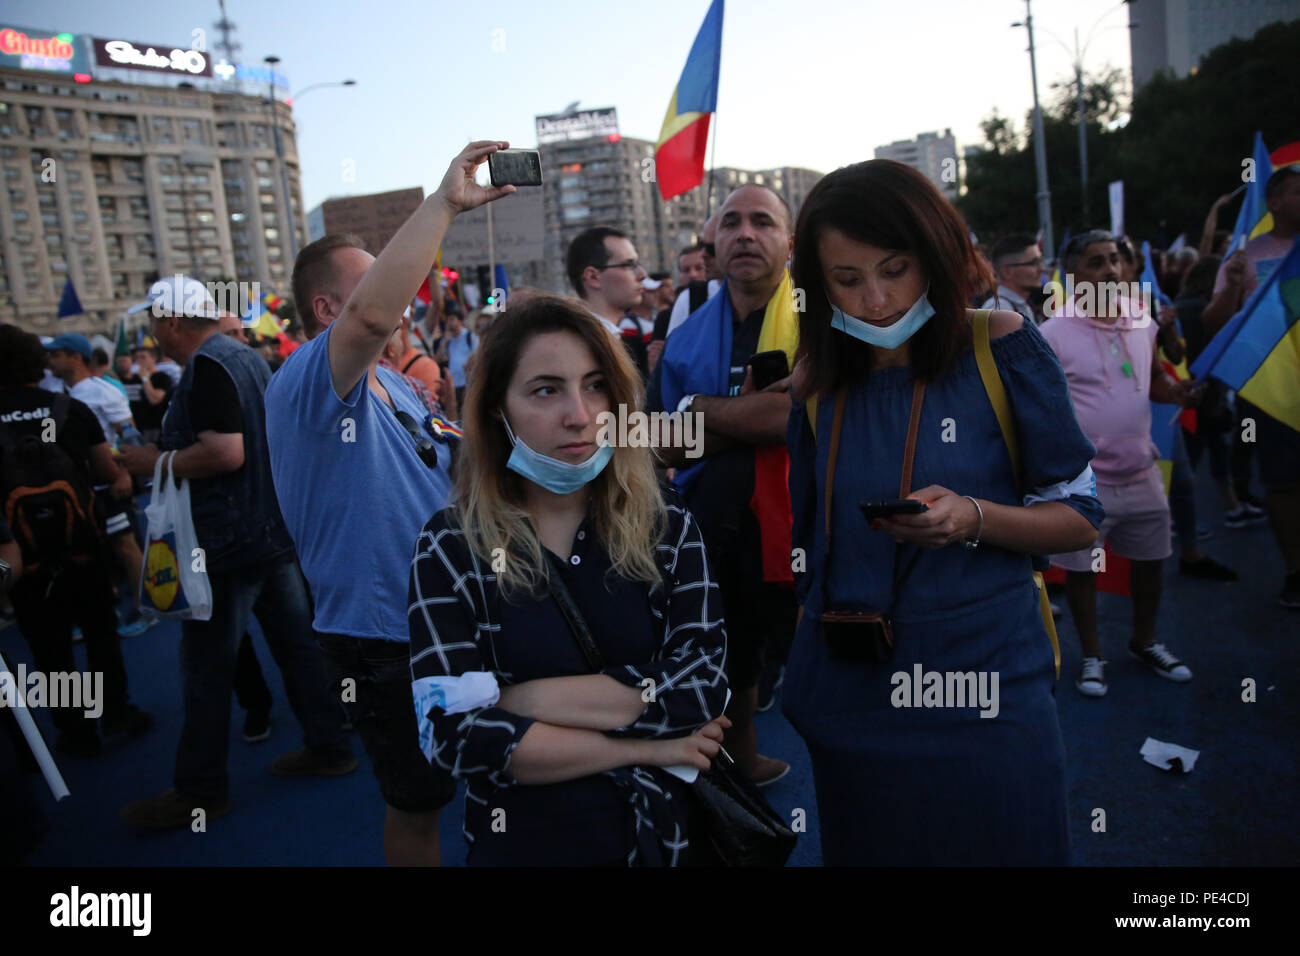 Bucharest, Romania - August 10, 2018: Tens of thousands of people are participating at violent anti-government protest in Bucharest. Over 400 people i - Stock Image